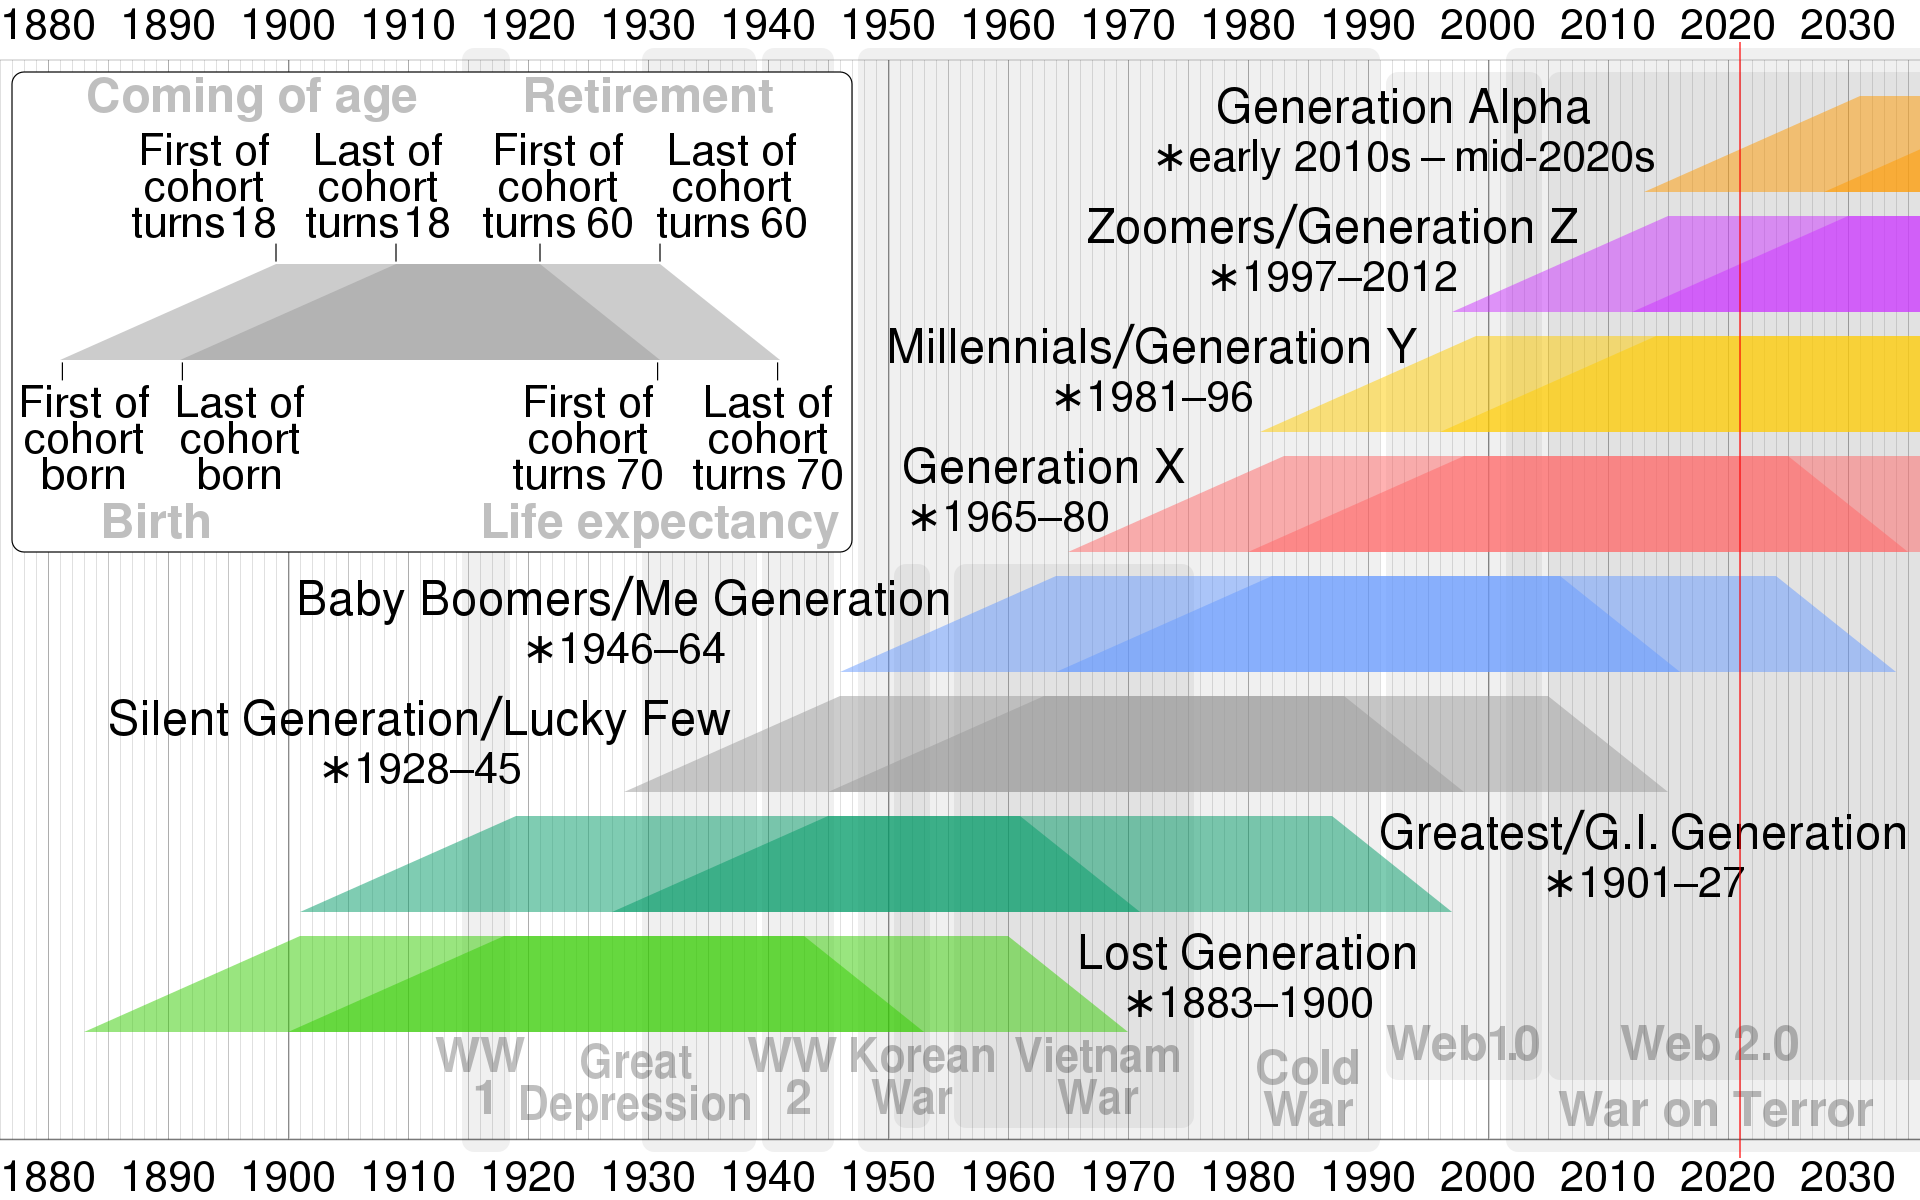 Generations timeline - By Cmglee - Own work, CC BY-SA 4.0